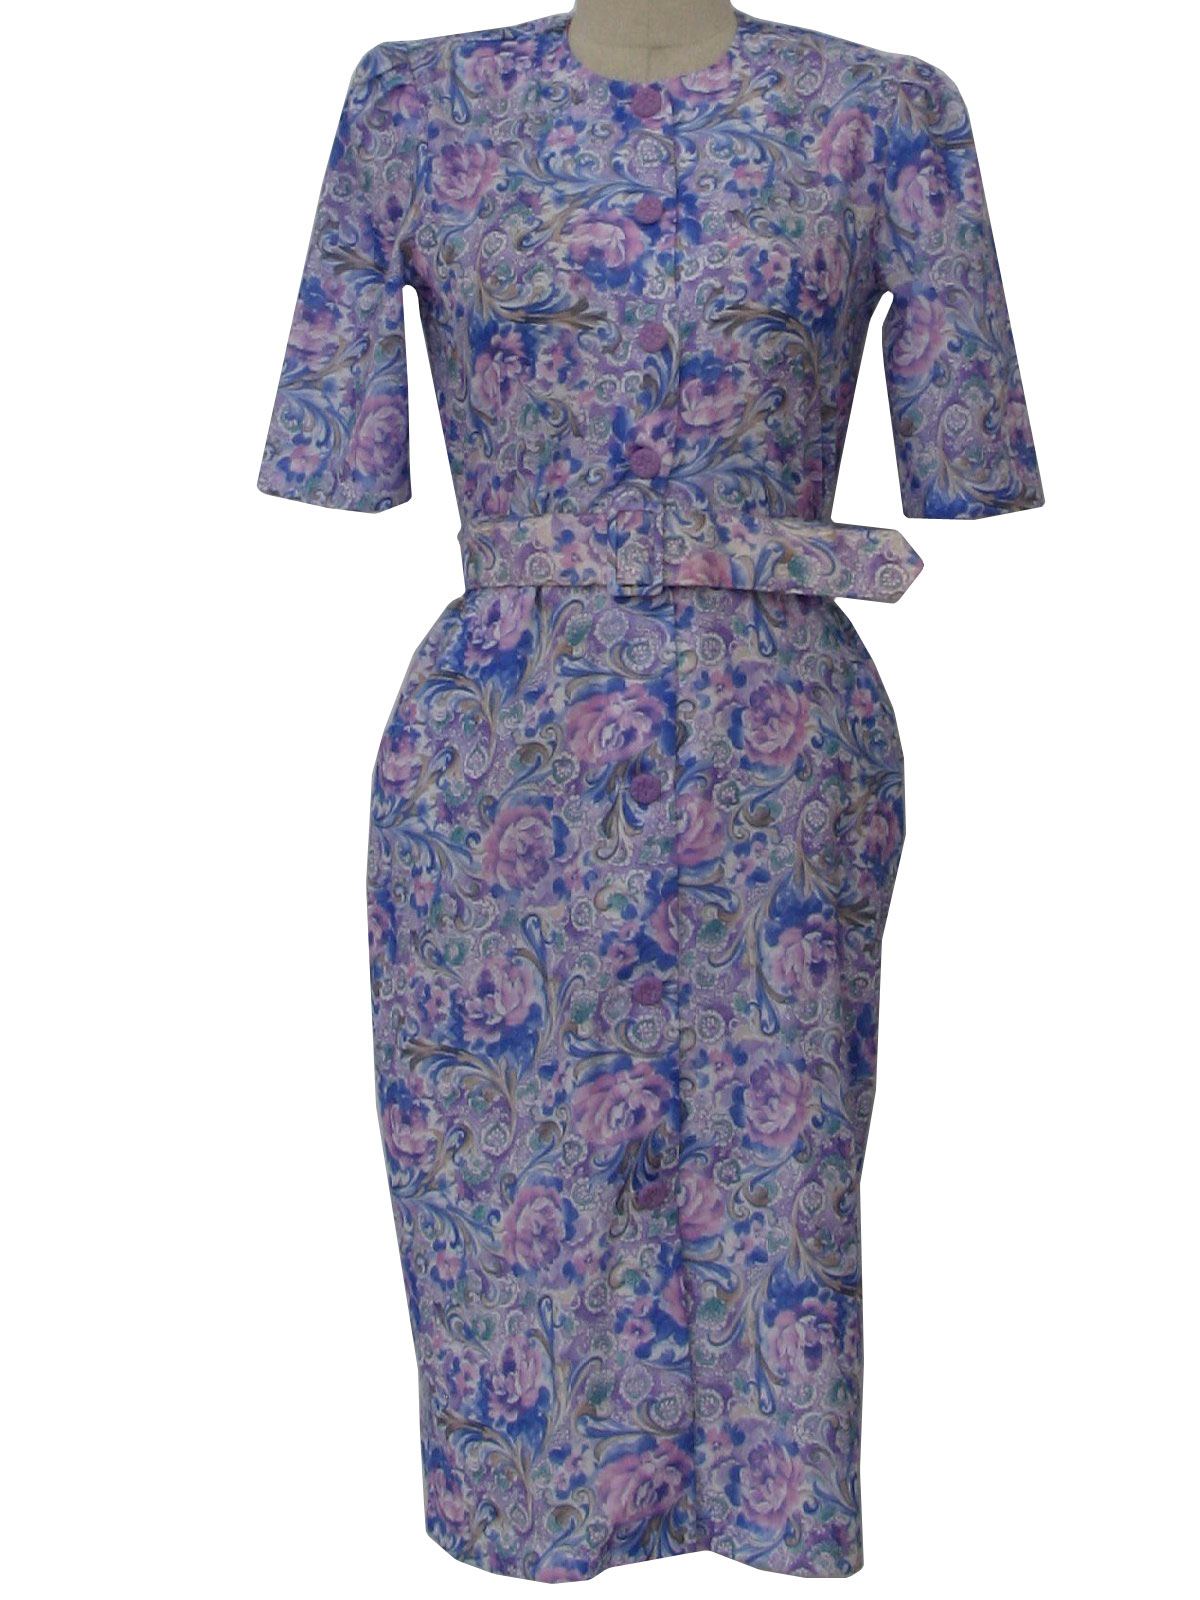 1960's Retro Dress: 60s -Touch Class- Womens retro style